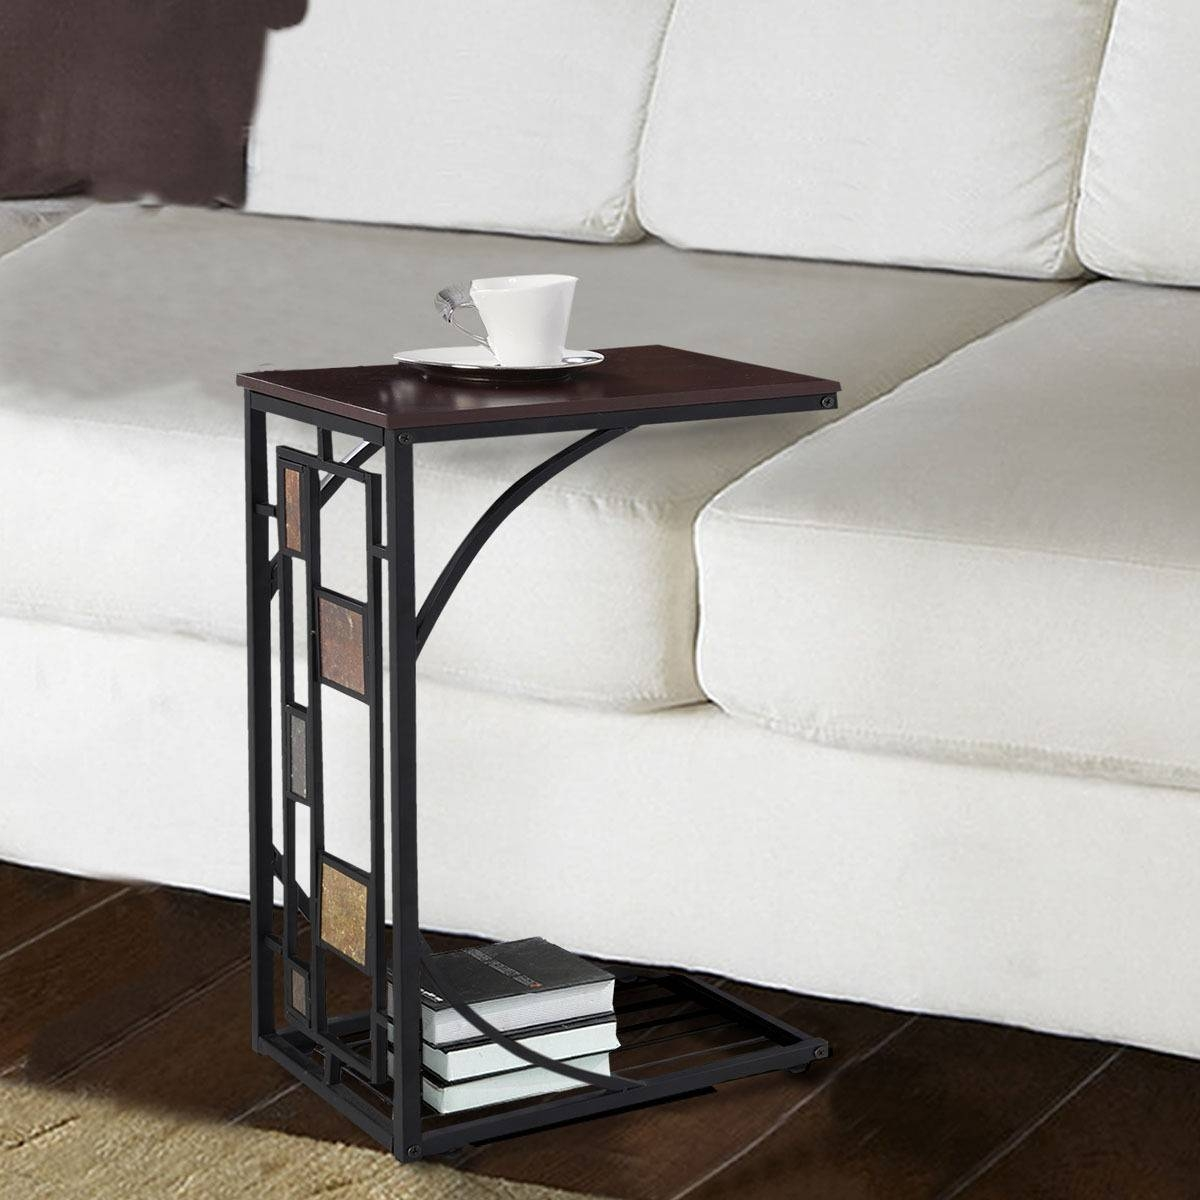 C Shaped Sofa End Side Table - End Tables - Accent Tables - Tables for Sofa Snack Tray Table (Image 2 of 30)